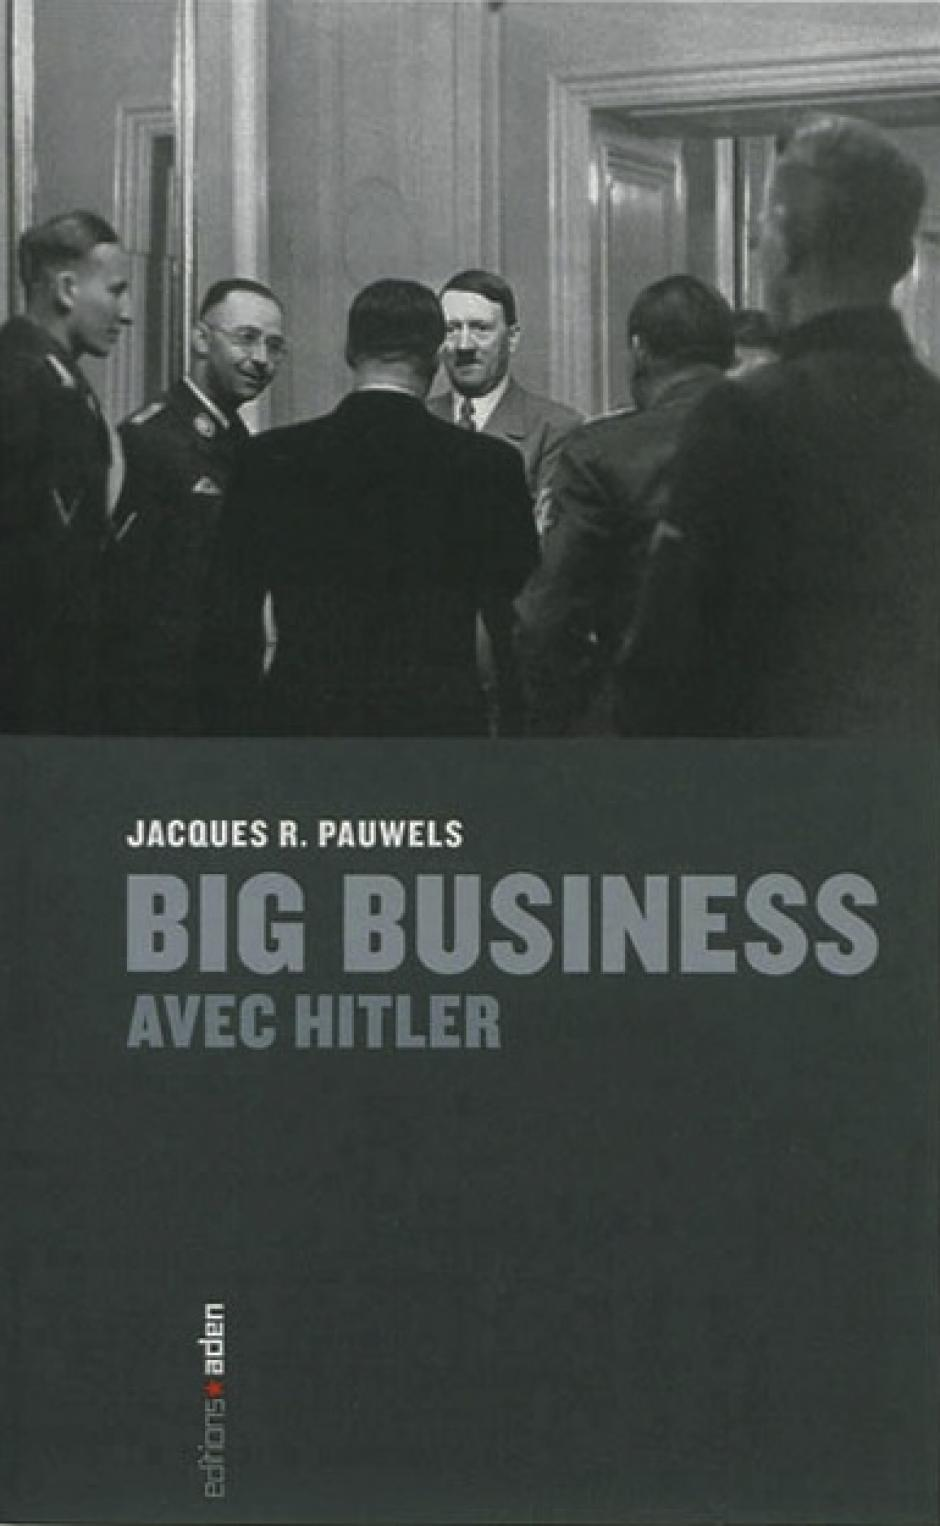 Jacques R. Pauwels, Big business avec Hitler